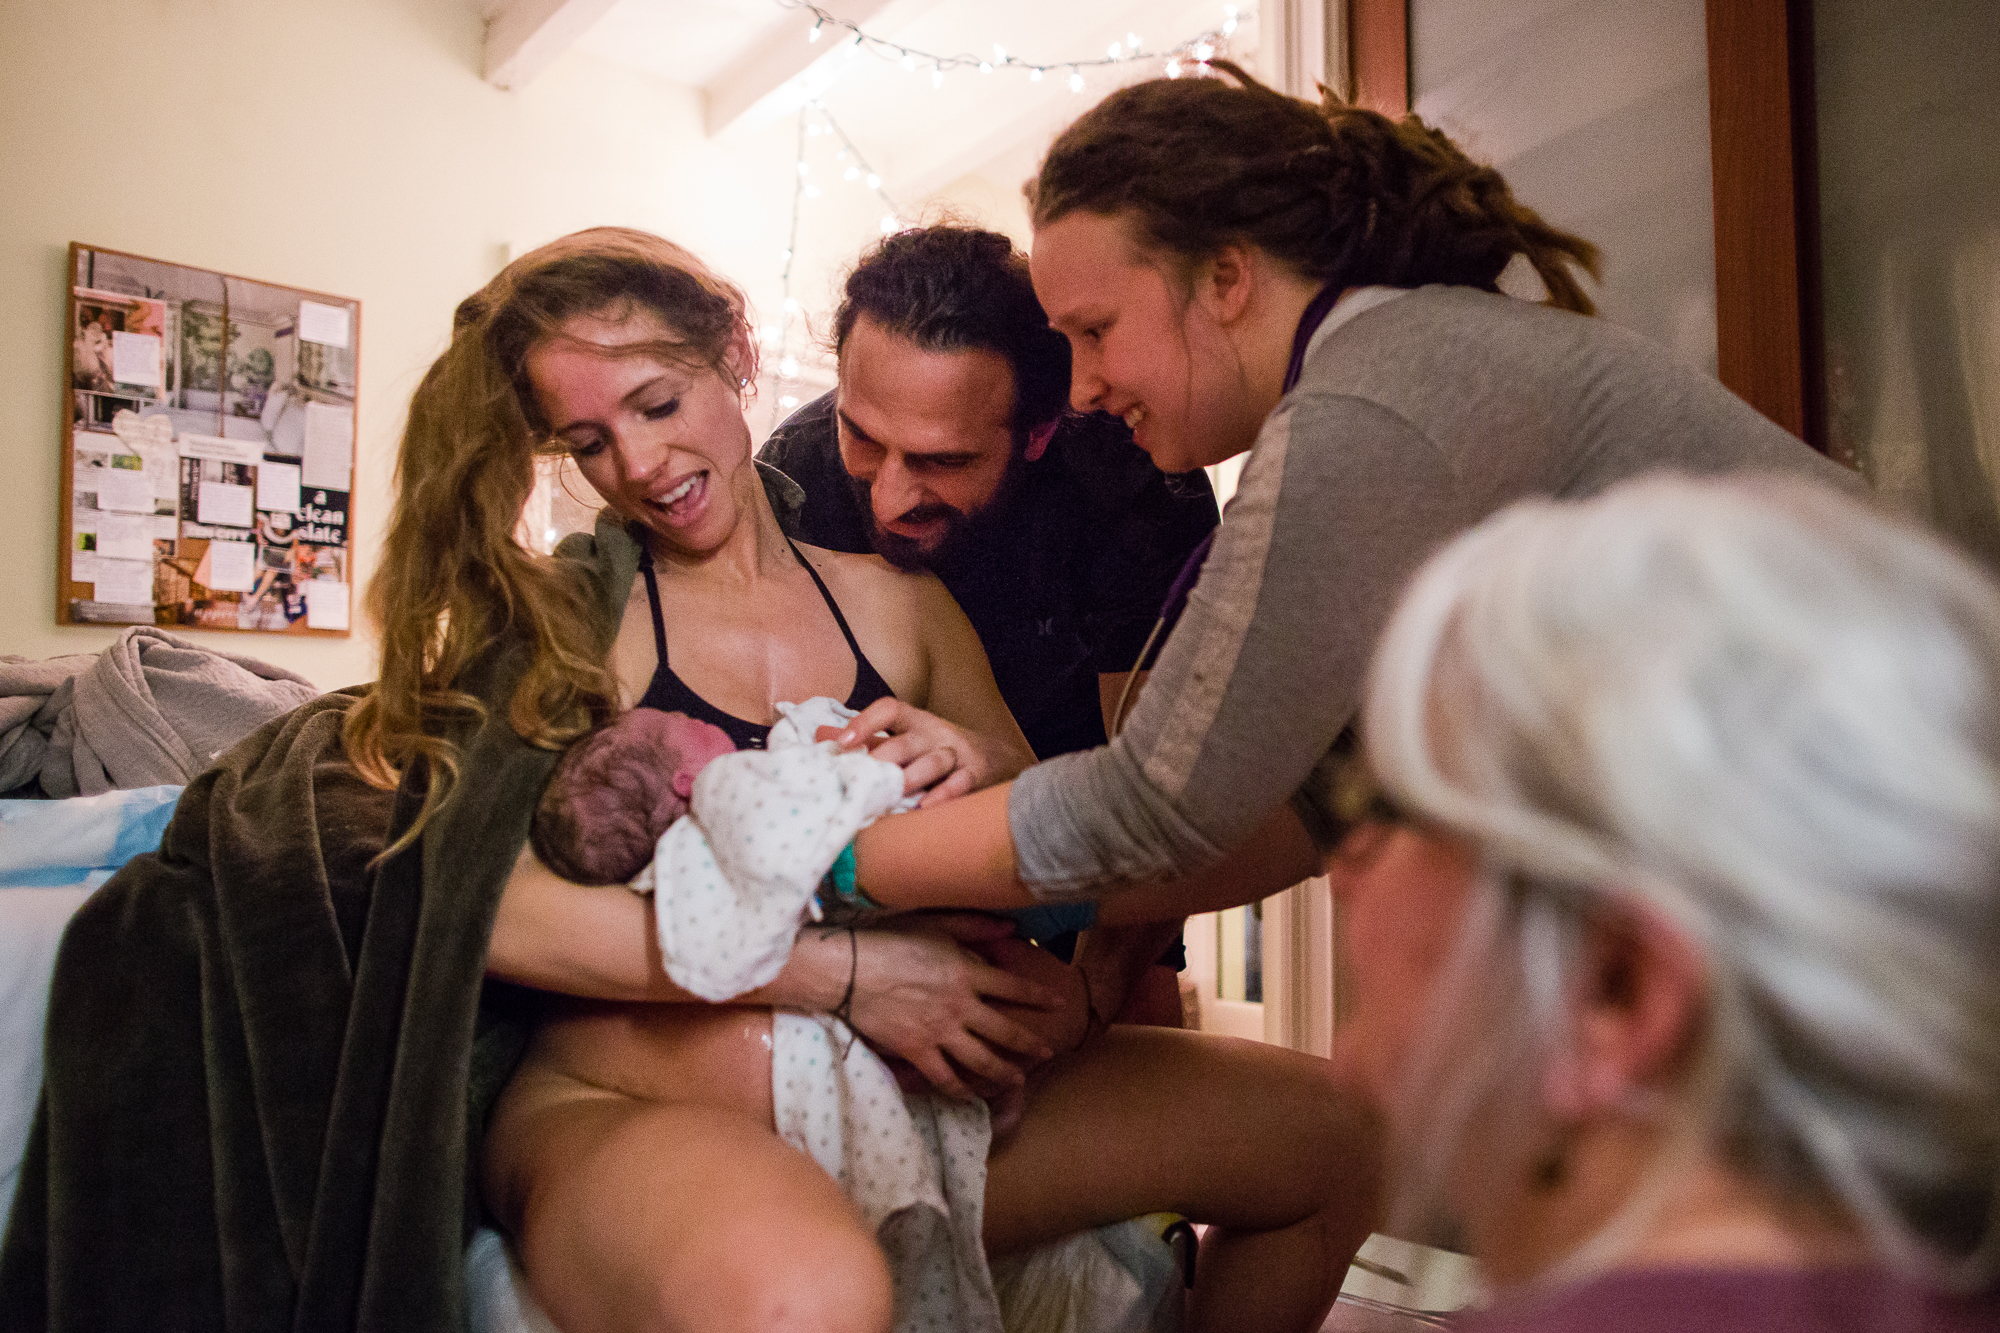 Midwife helps new mom deliver baby at home, husband and midwife support, Philadelphia Birth Photographer Rachel Utain-Evans